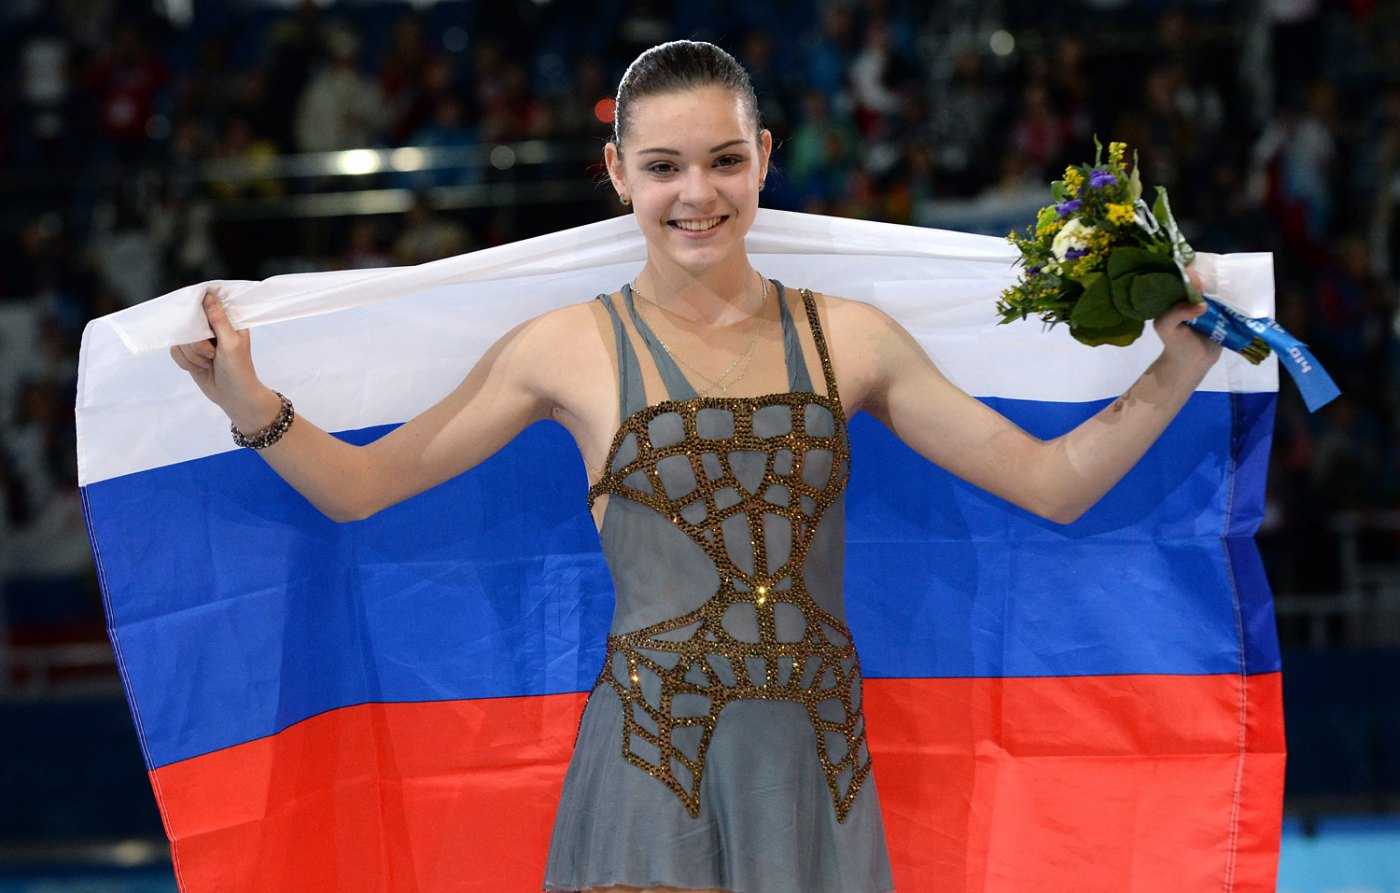 Russia's gold medalist Adelina Sotnikova celebrates during the Women's Figure Skating Flower Ceremony at the Iceberg Skating Palace during the Sochi Winter Olympics on February 20, 2014.